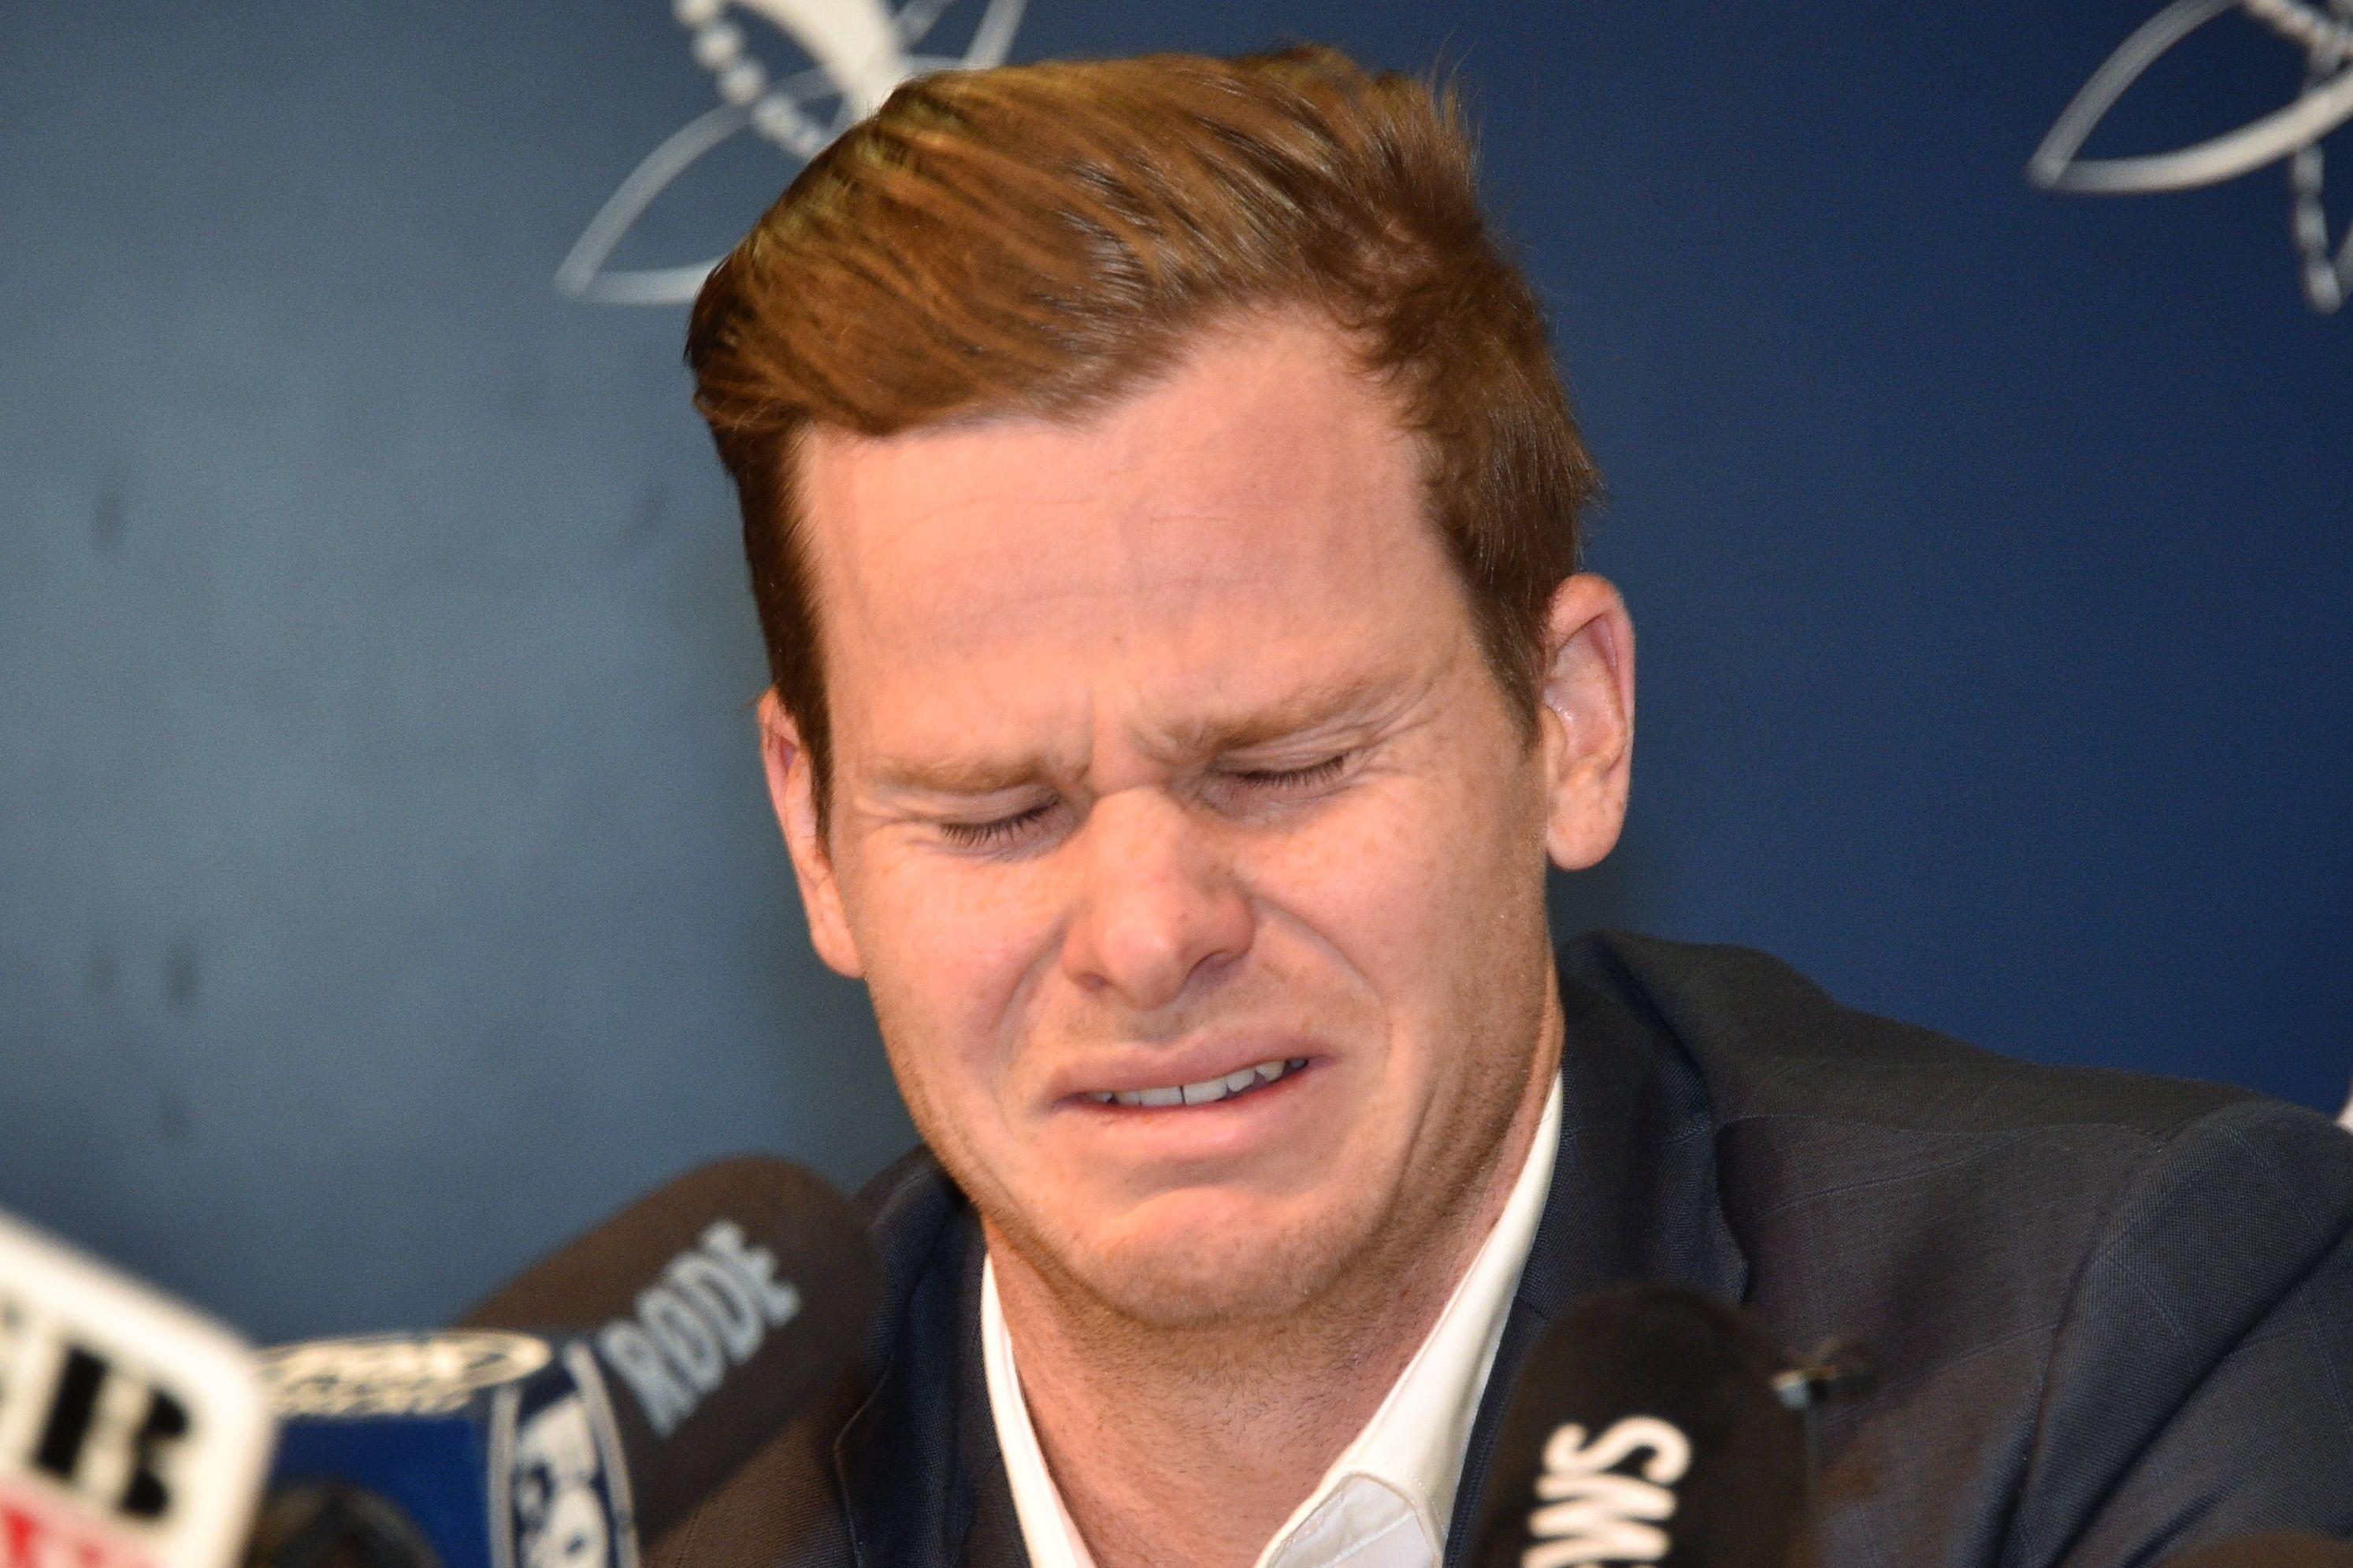 Steve Smith cried as he apologised for Australia's cheat storm